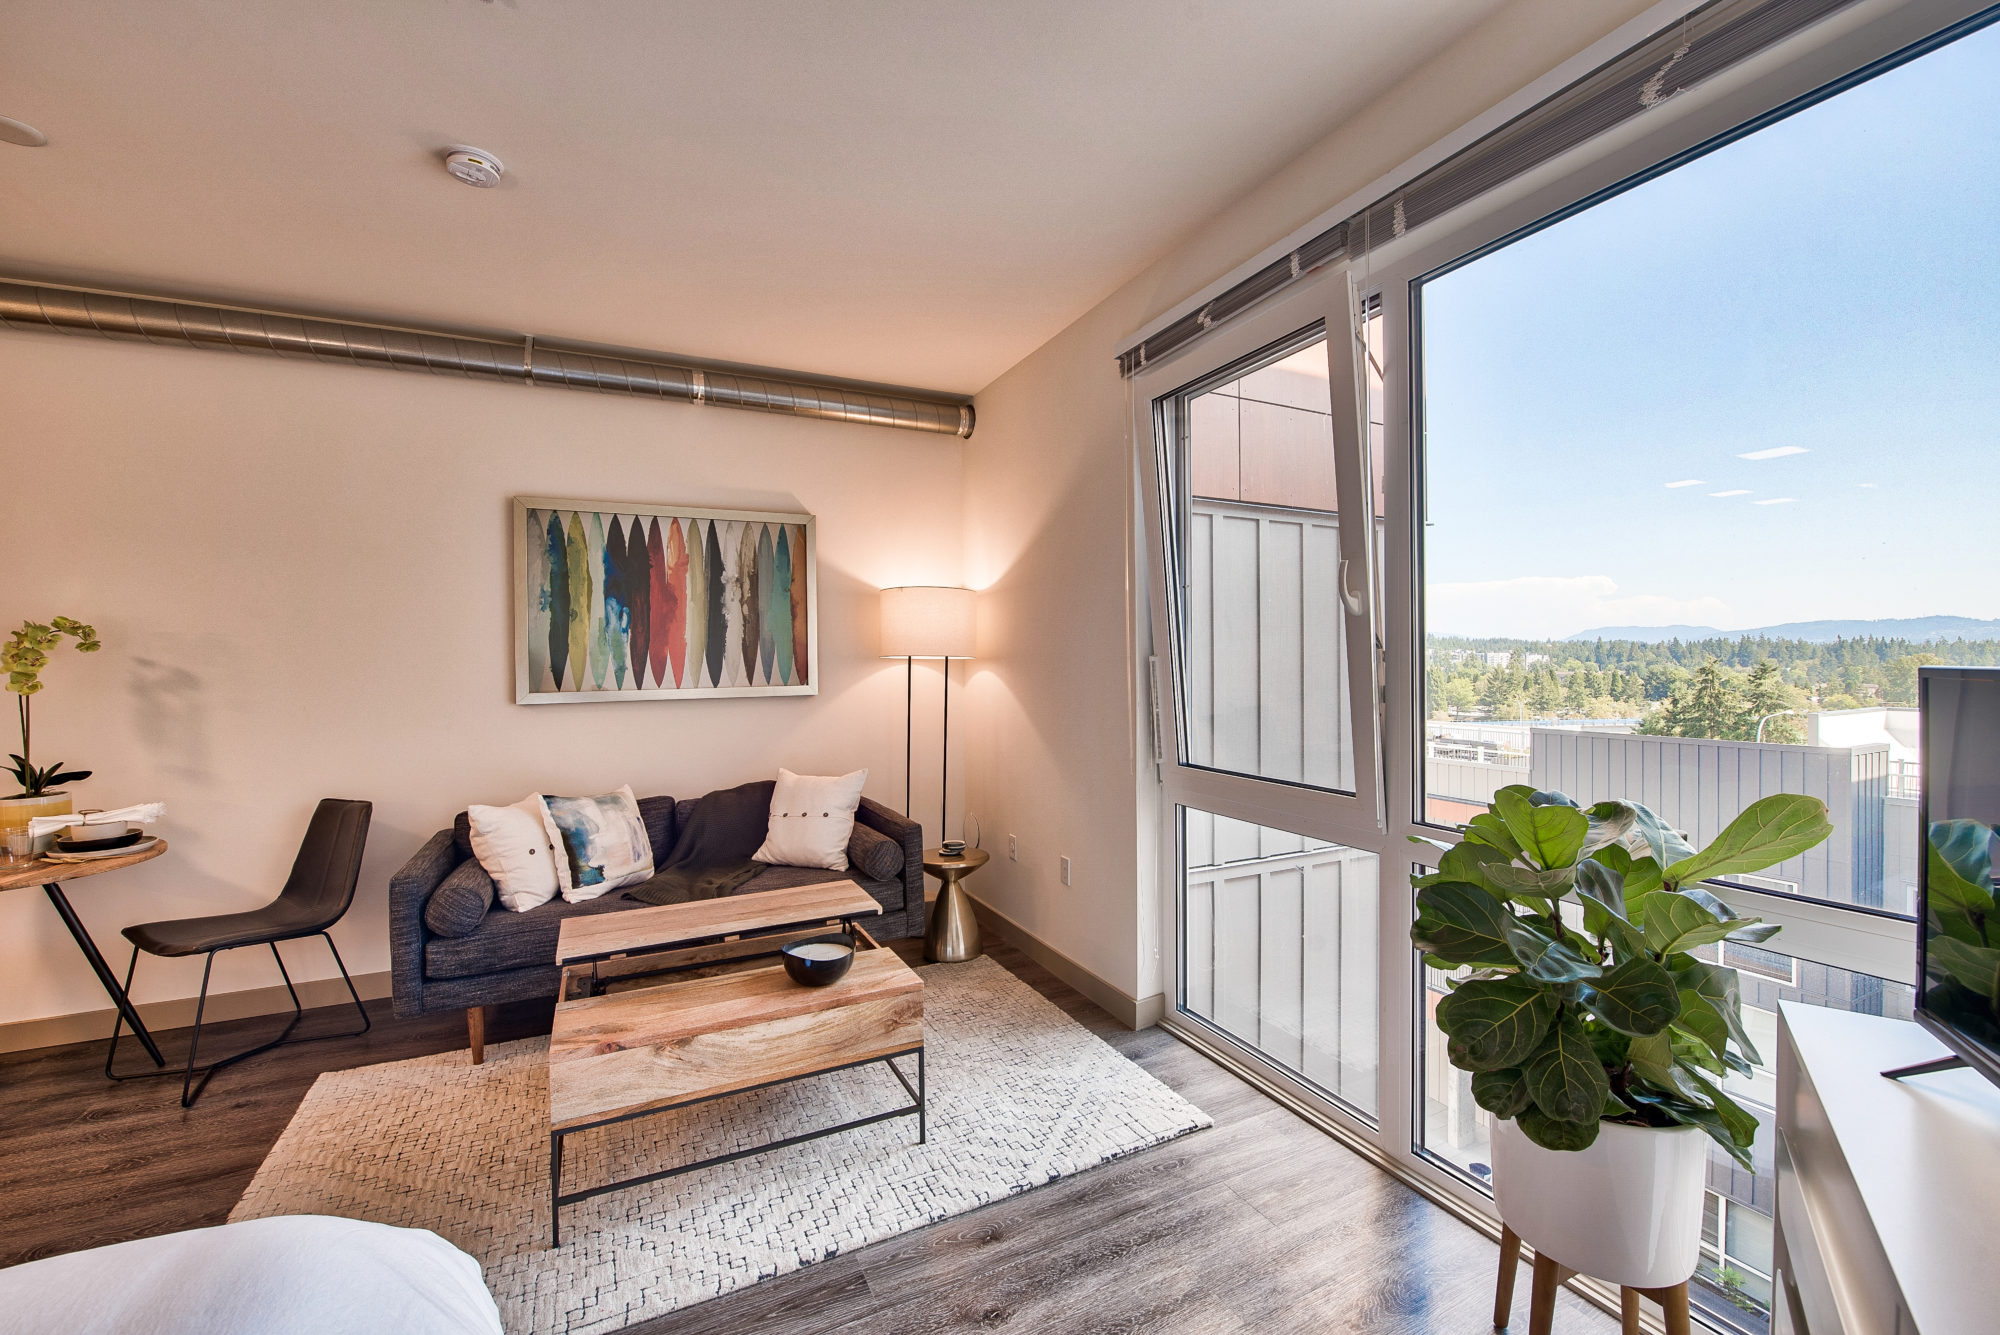 living area with view, hard flooring, windows with views, exposed ventilation.